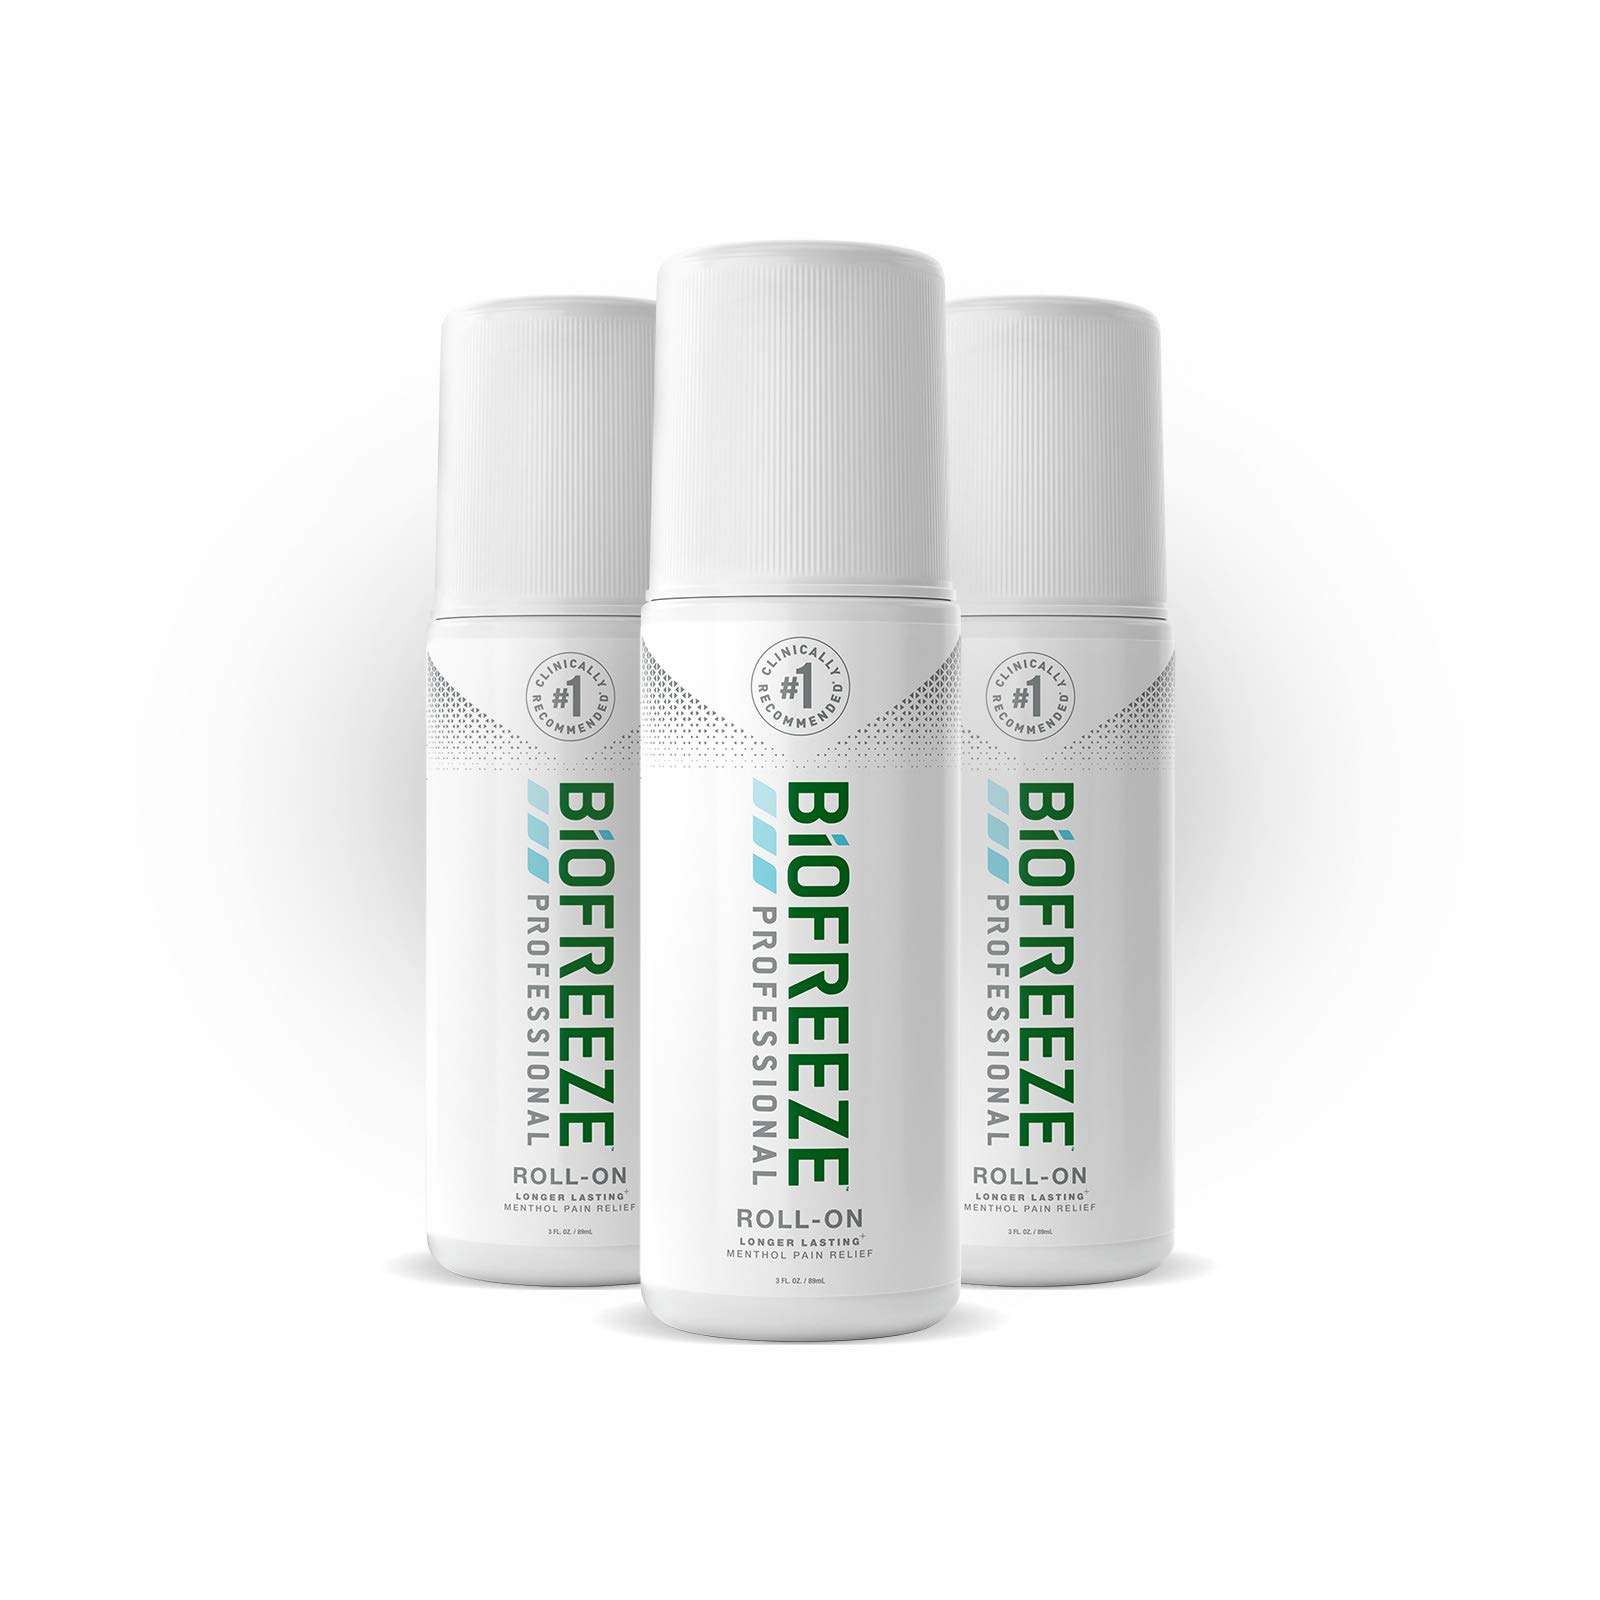 Biofreeze Professional Roll-On Pain Relief Gel, 3 oz. Bottle, Green, Pack of 3 (Package may vary) by Biofreeze